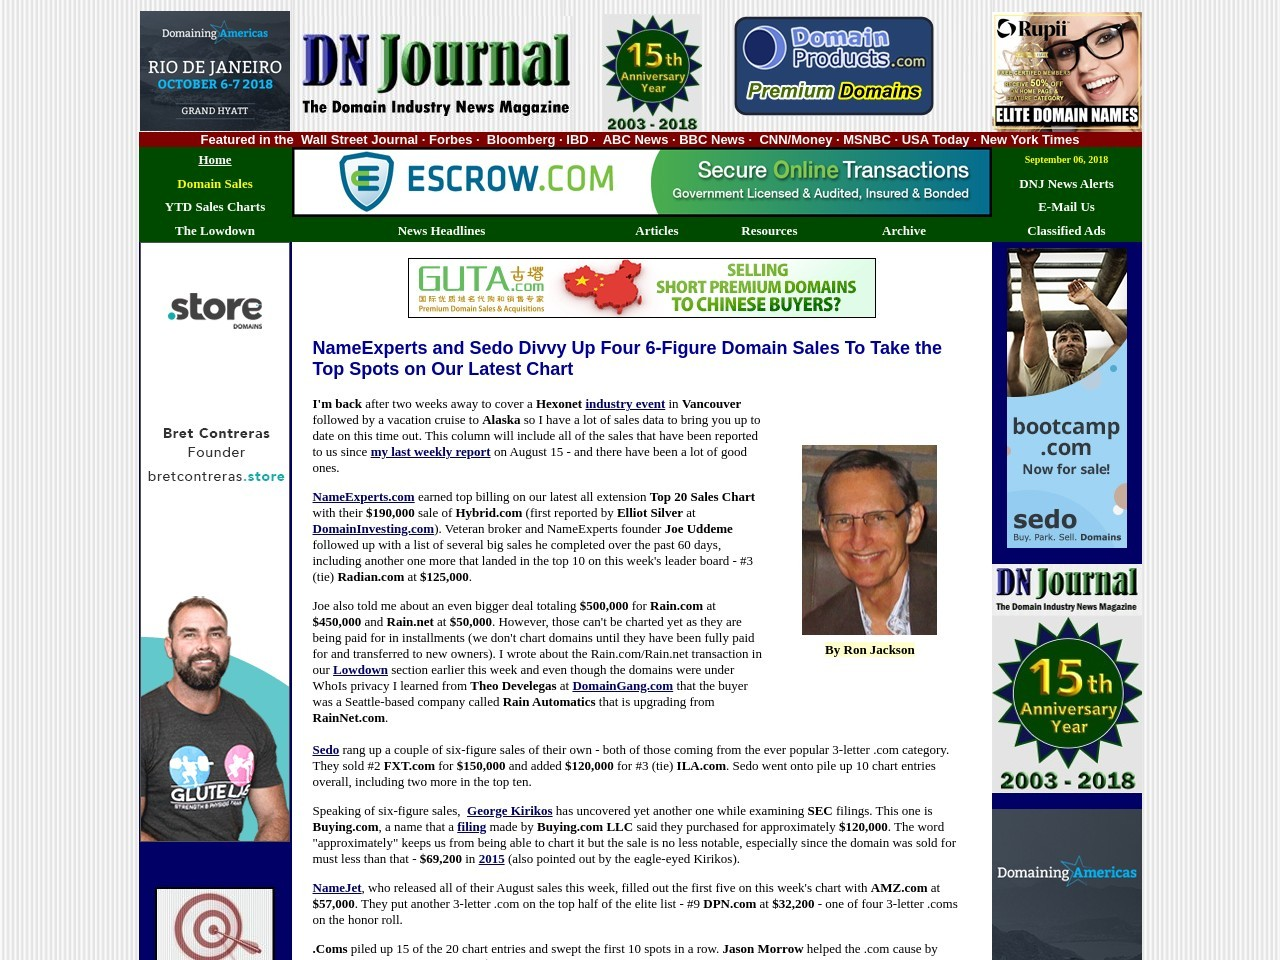 NameExperts & Sedo Divvy Up Four 6-Figure Domain Sales To Take Top Spots on DNJ Chart